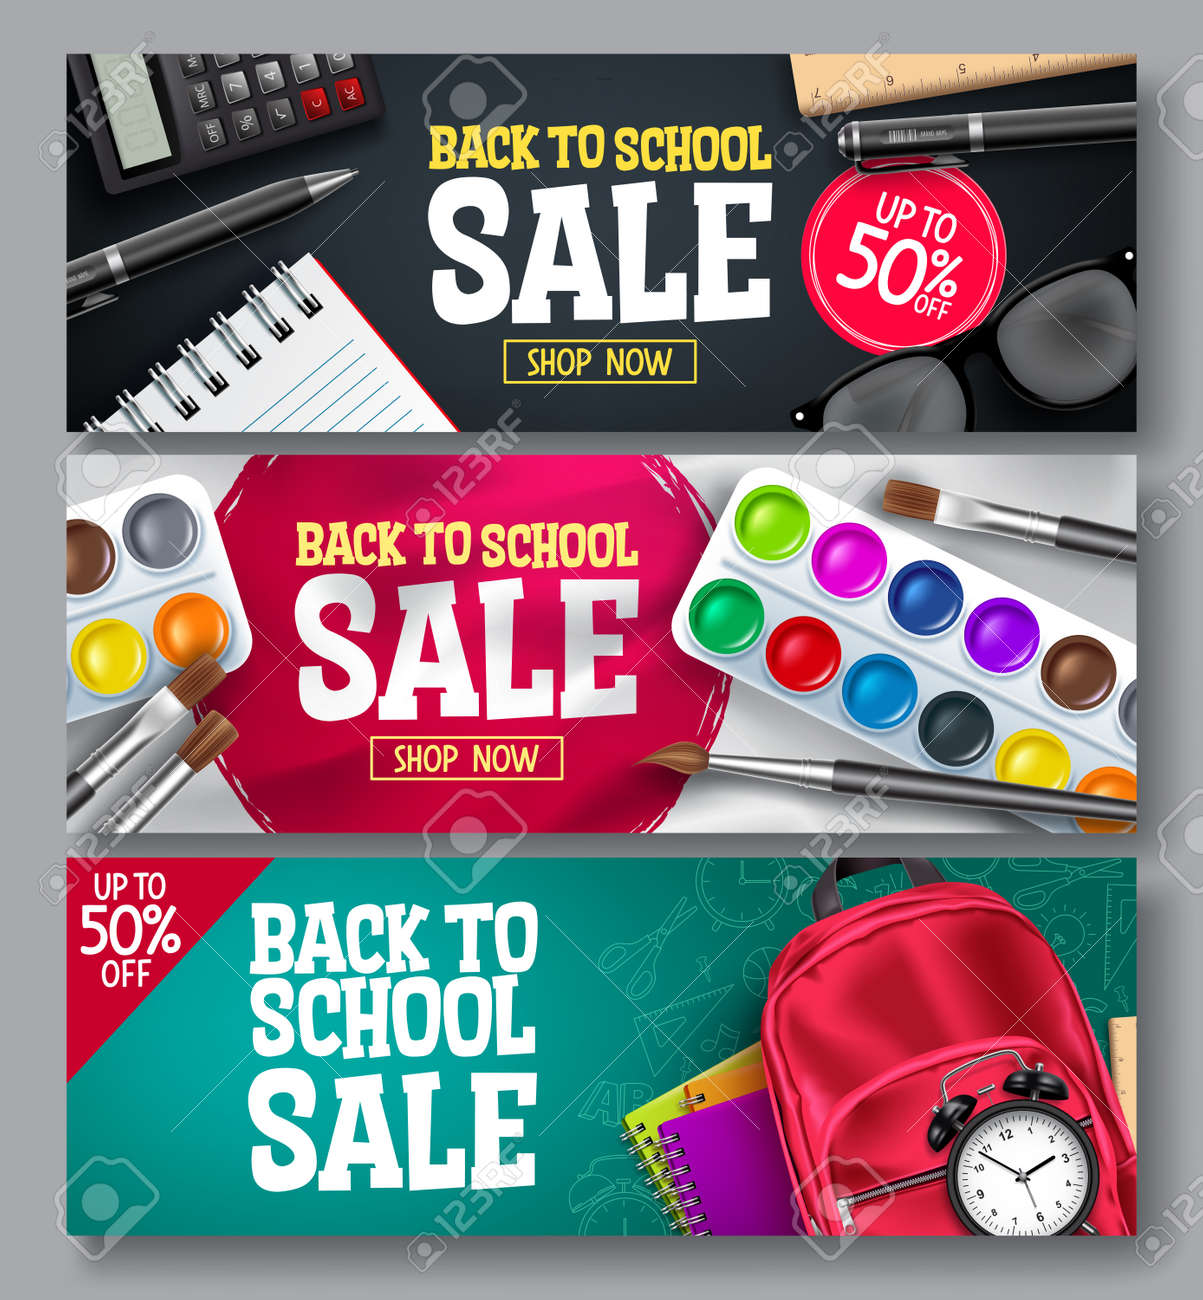 Back to school sale vector banner set. Back to school promo educational supplies for advertisement collection design. Vector illustration - 168629311